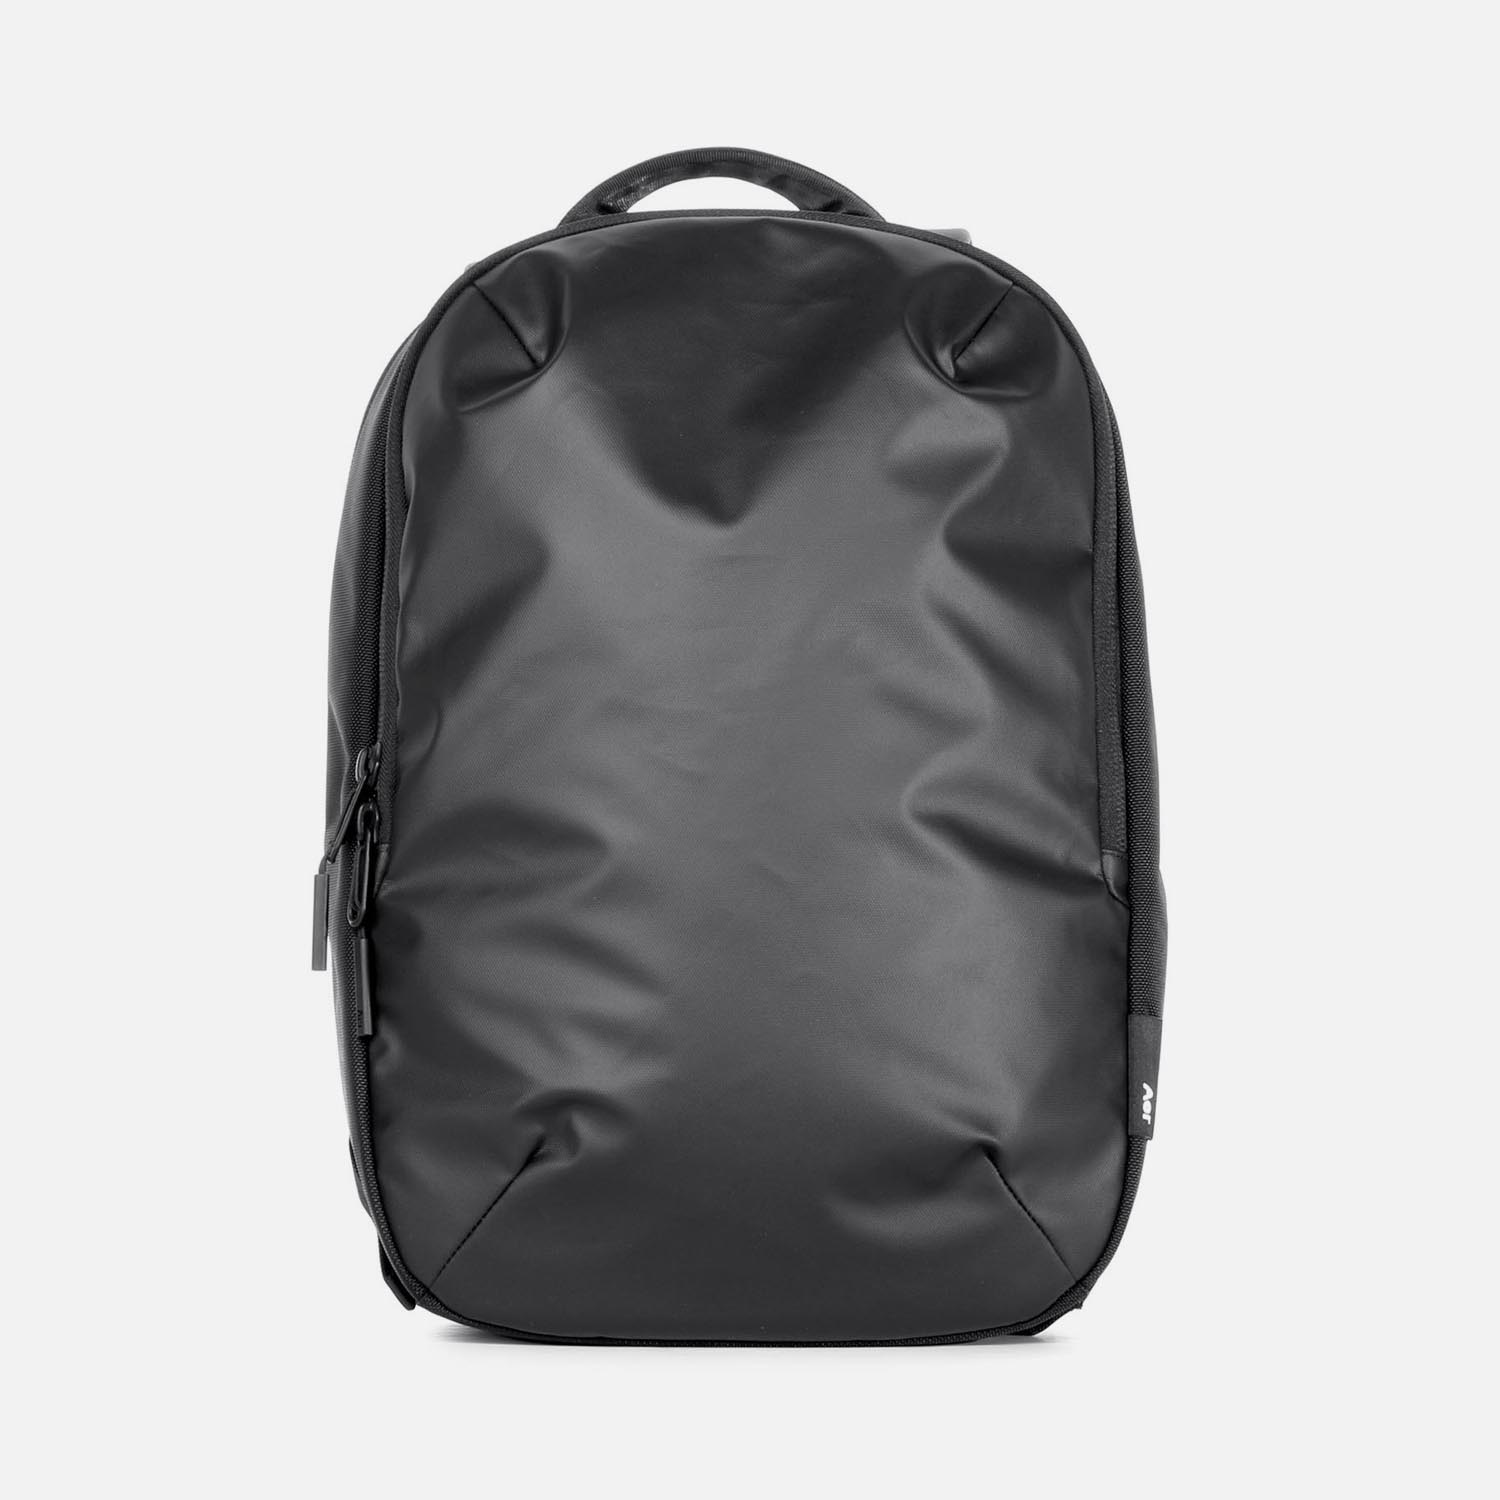 Day Pack - Black — Aer | Modern gym bags, travel backpacks